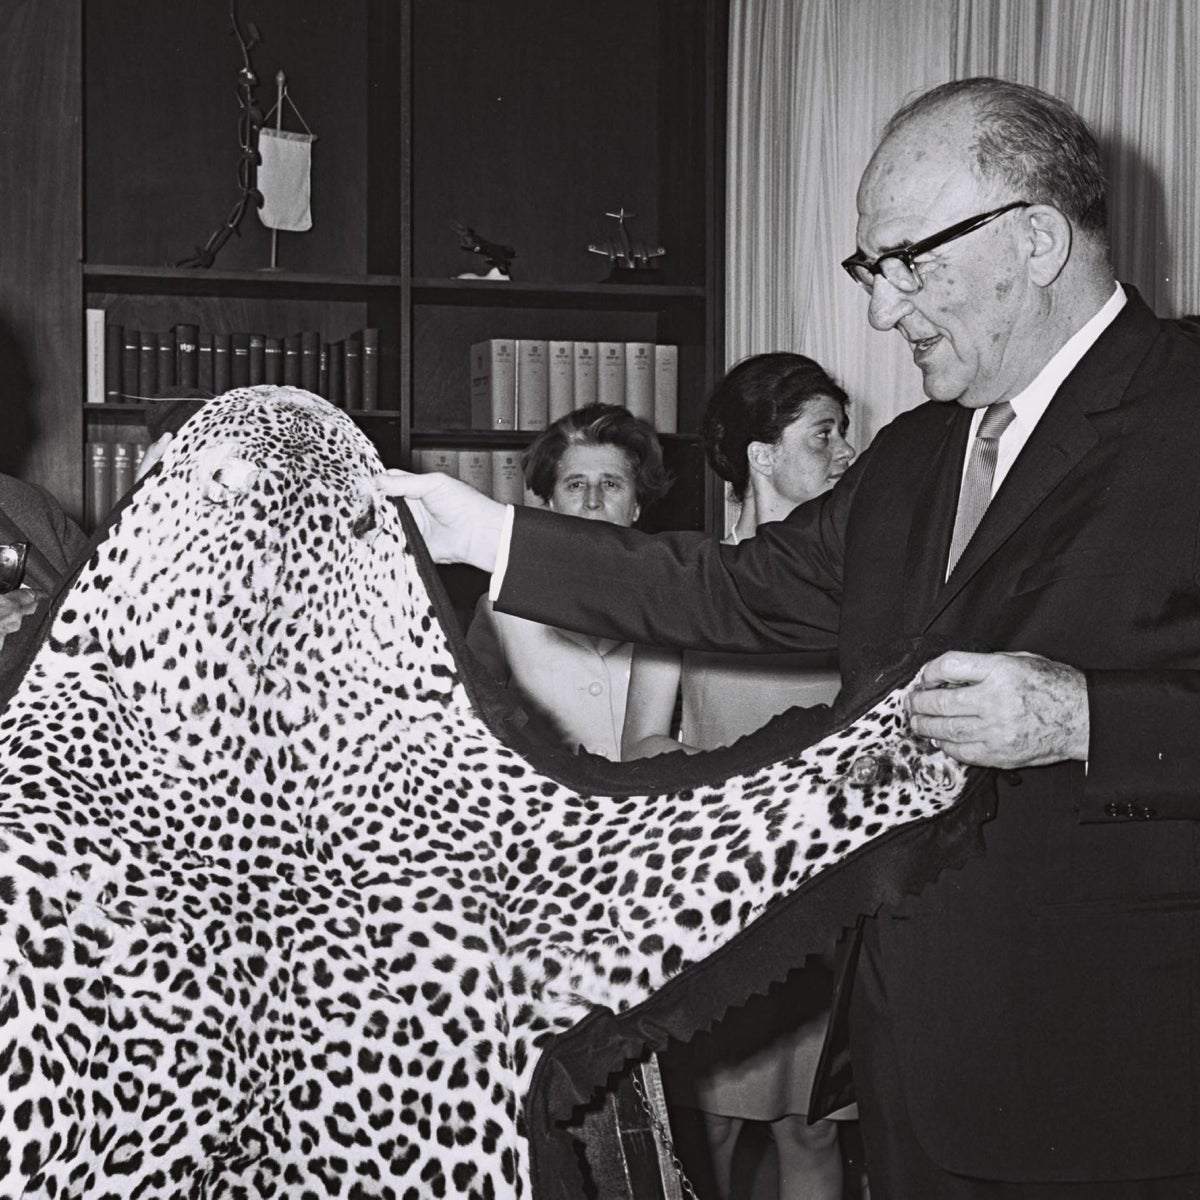 Malawi President Kamuzu Banda present Israeli Prime Minister Levy Eshkol with a leopard skin at the latter's office in Jerusalem.